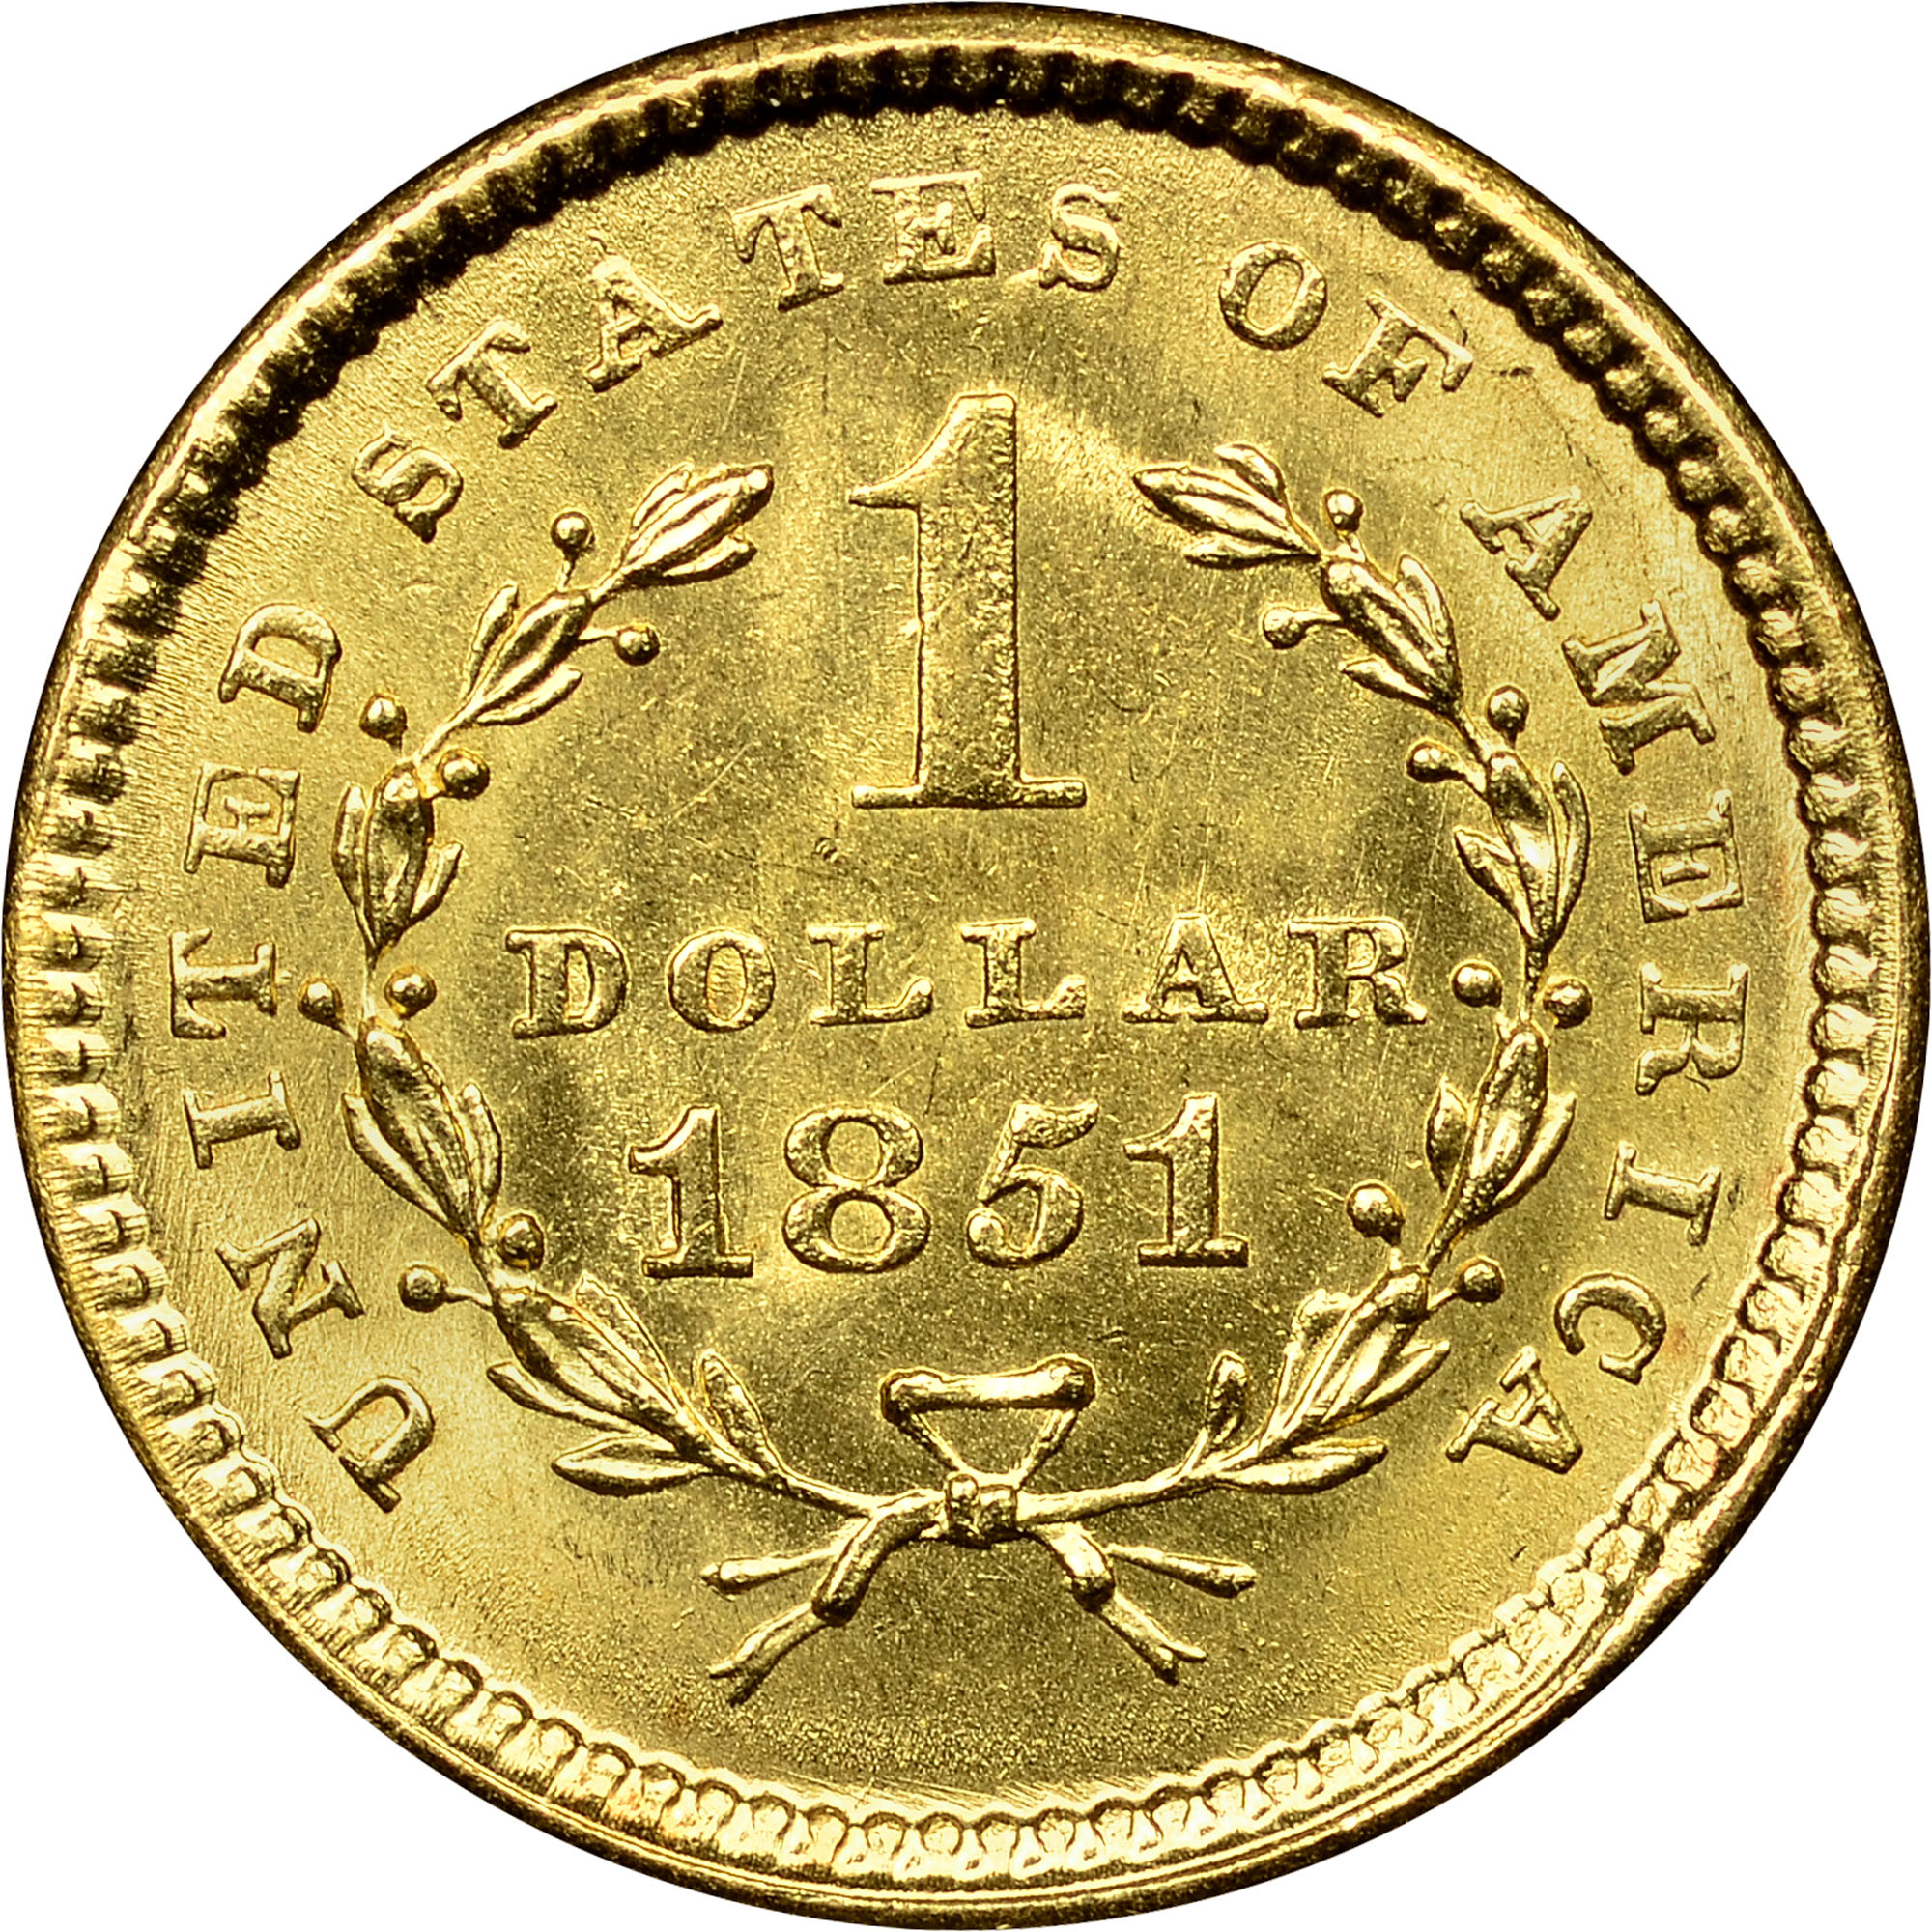 1851 G 1 Ms Gold Dollars Ngc